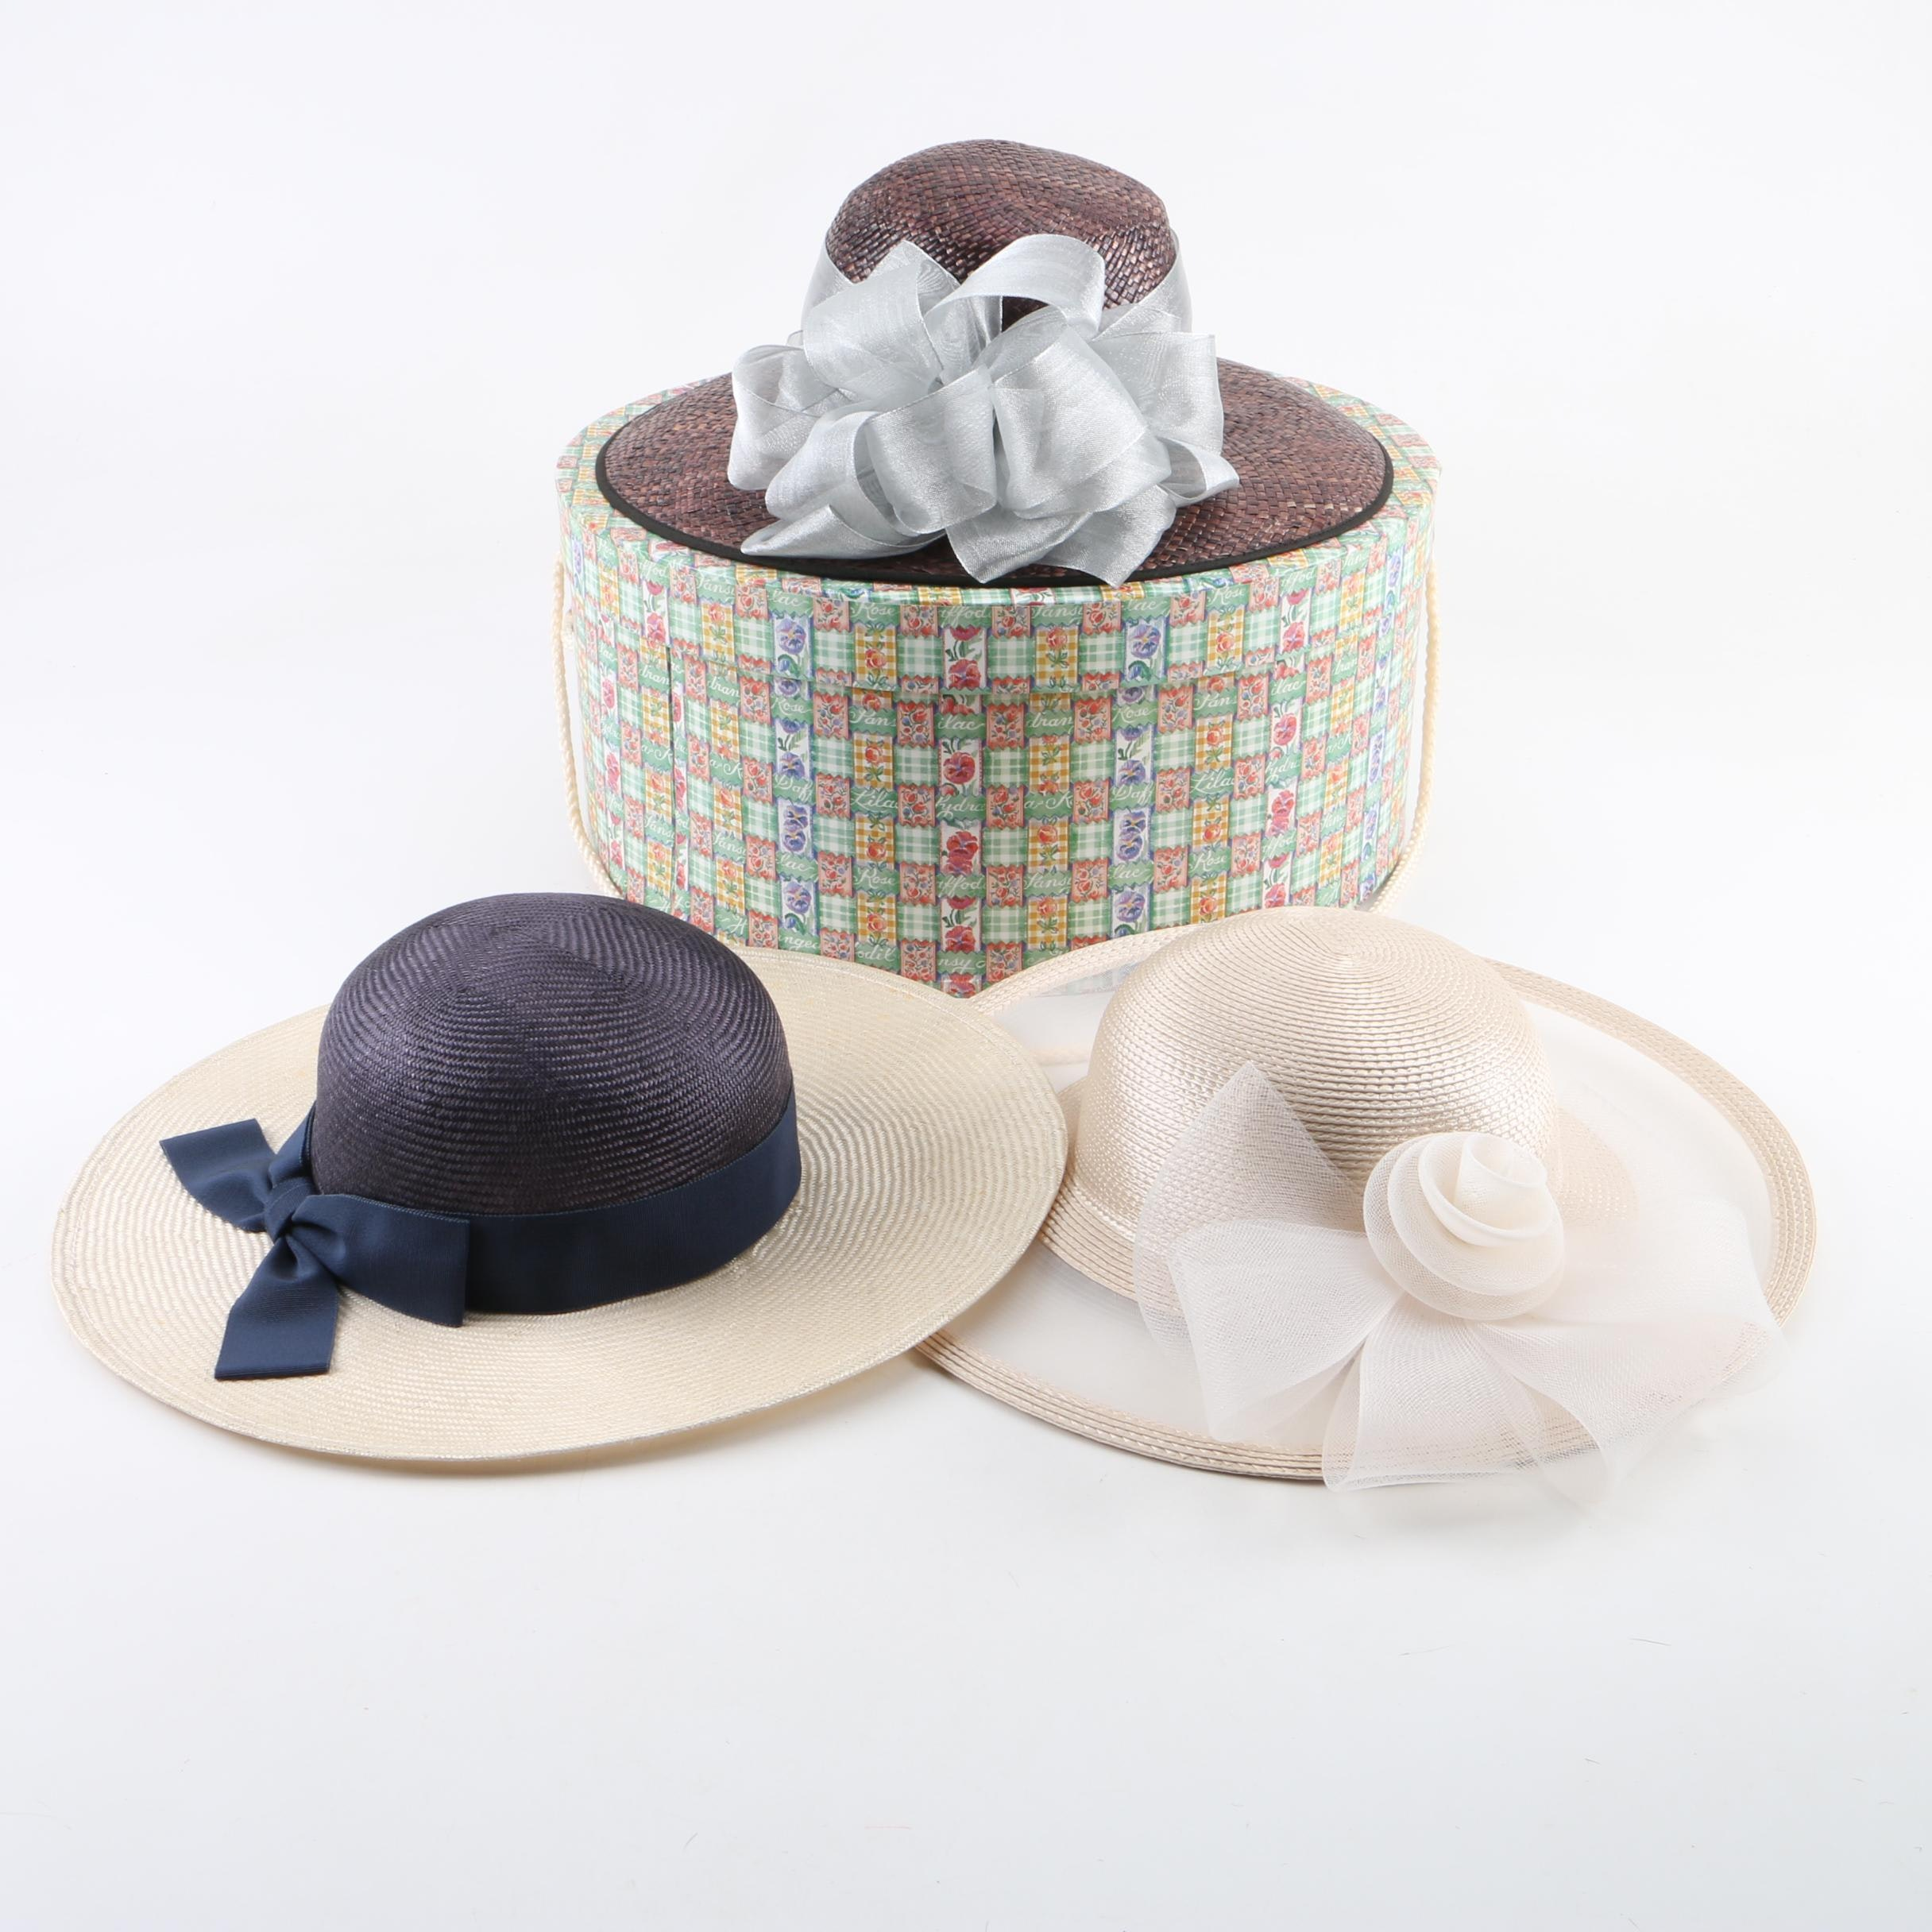 Women's Woven Straw and Cellophane Hats in Hat Box Including Adrienne